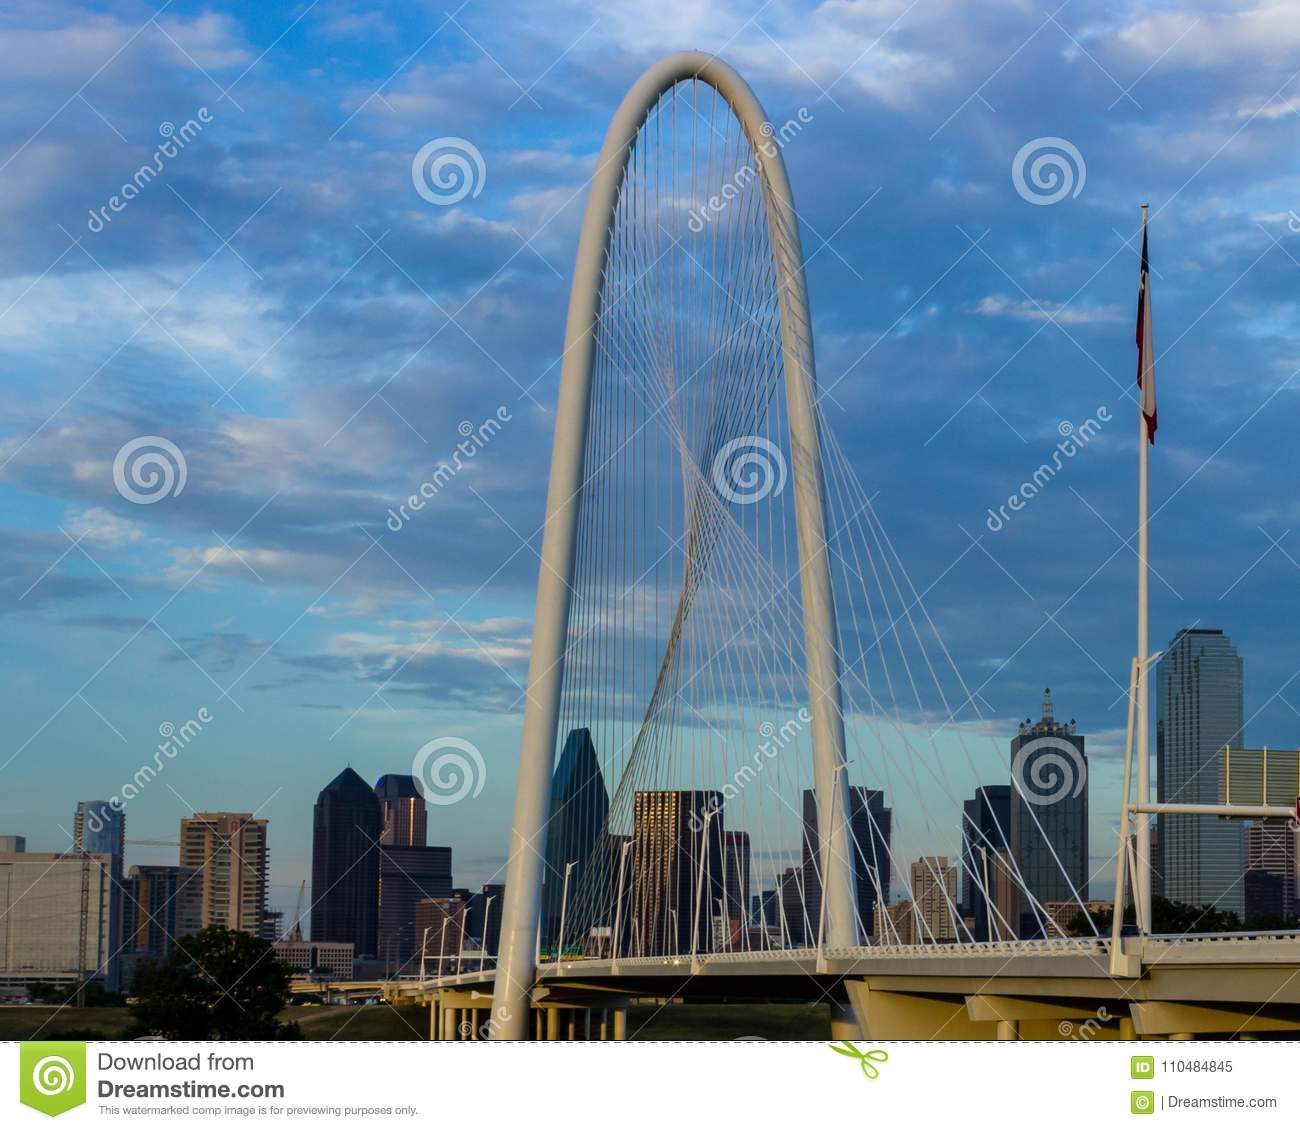 Margaret Hunt Hill Bridge with Dallas, Texas skyline in the back